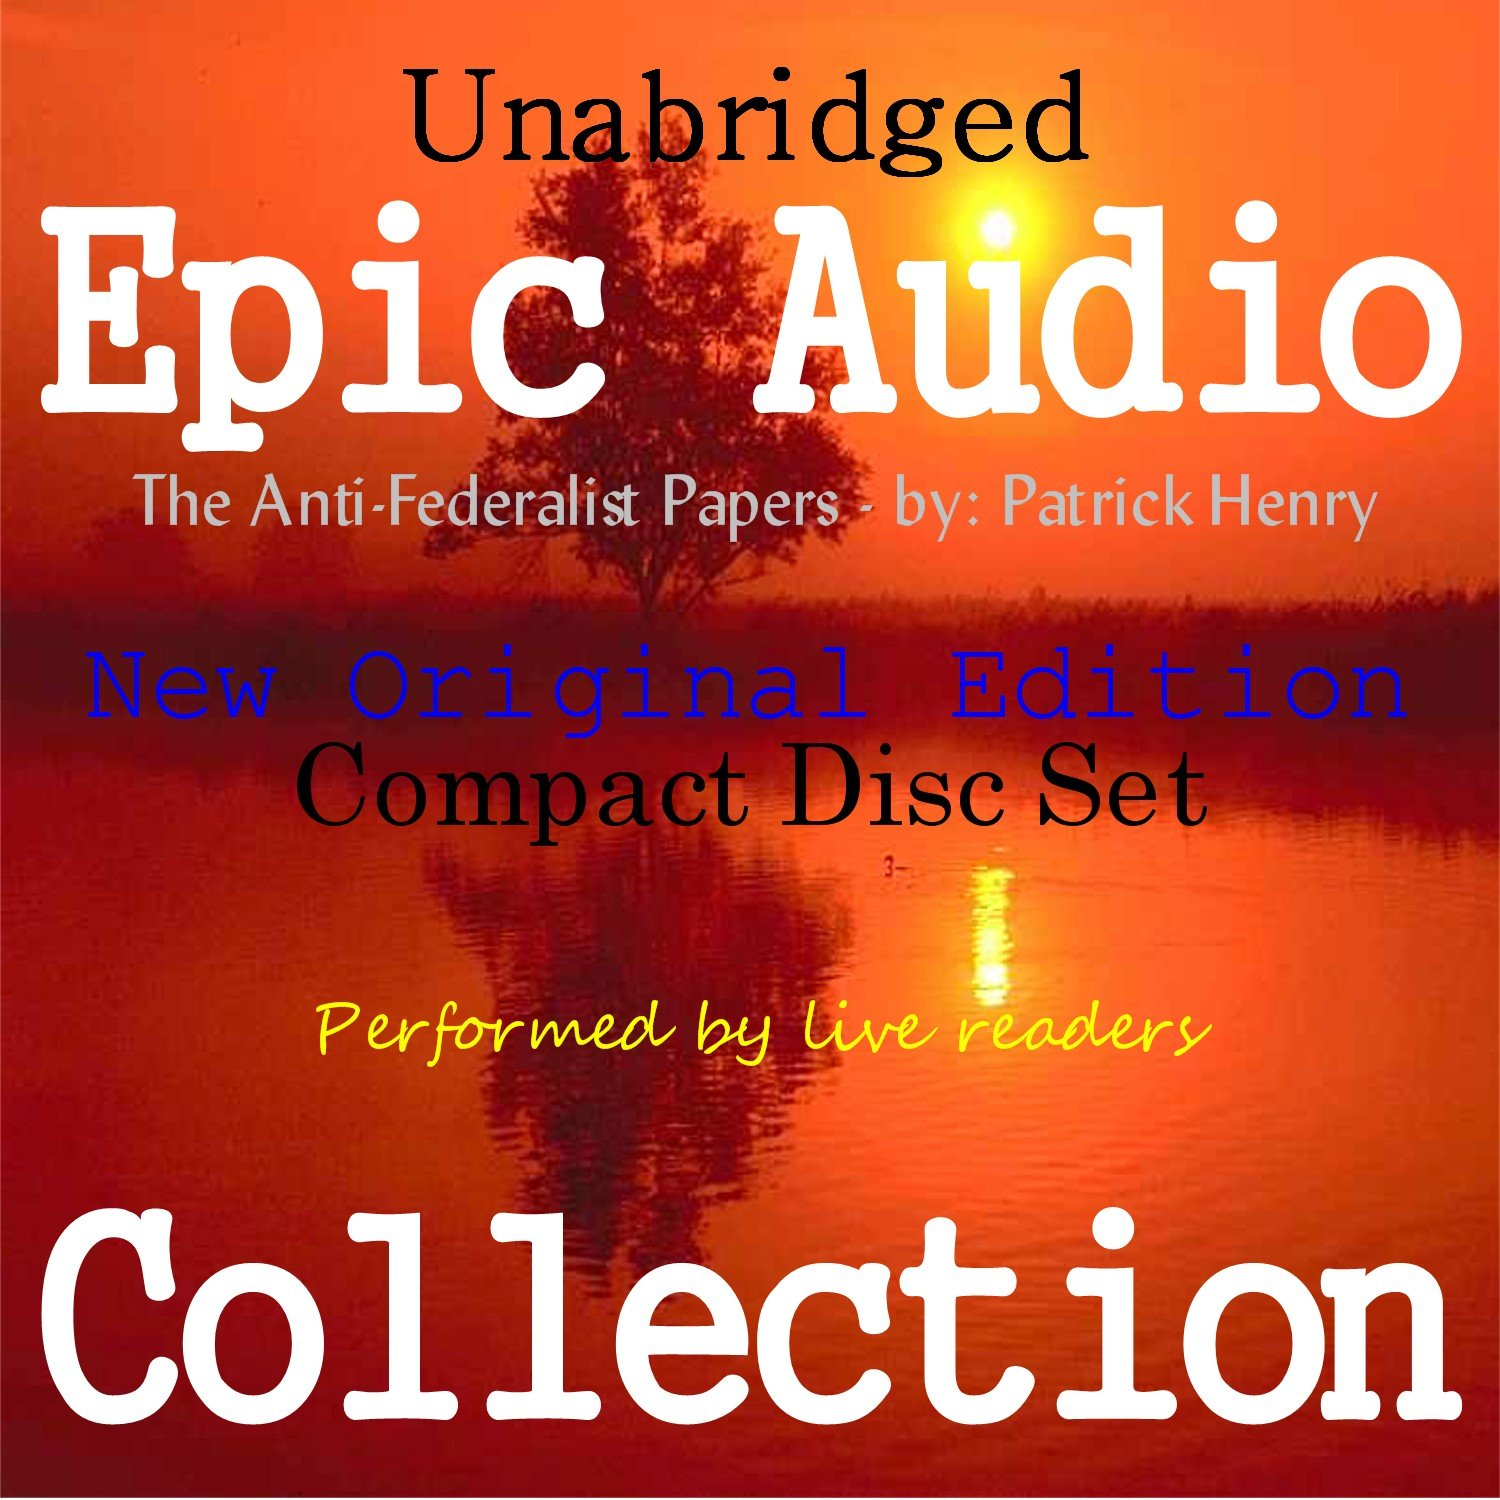 The Anti-Federalist Papers [Epic Audio Collection]